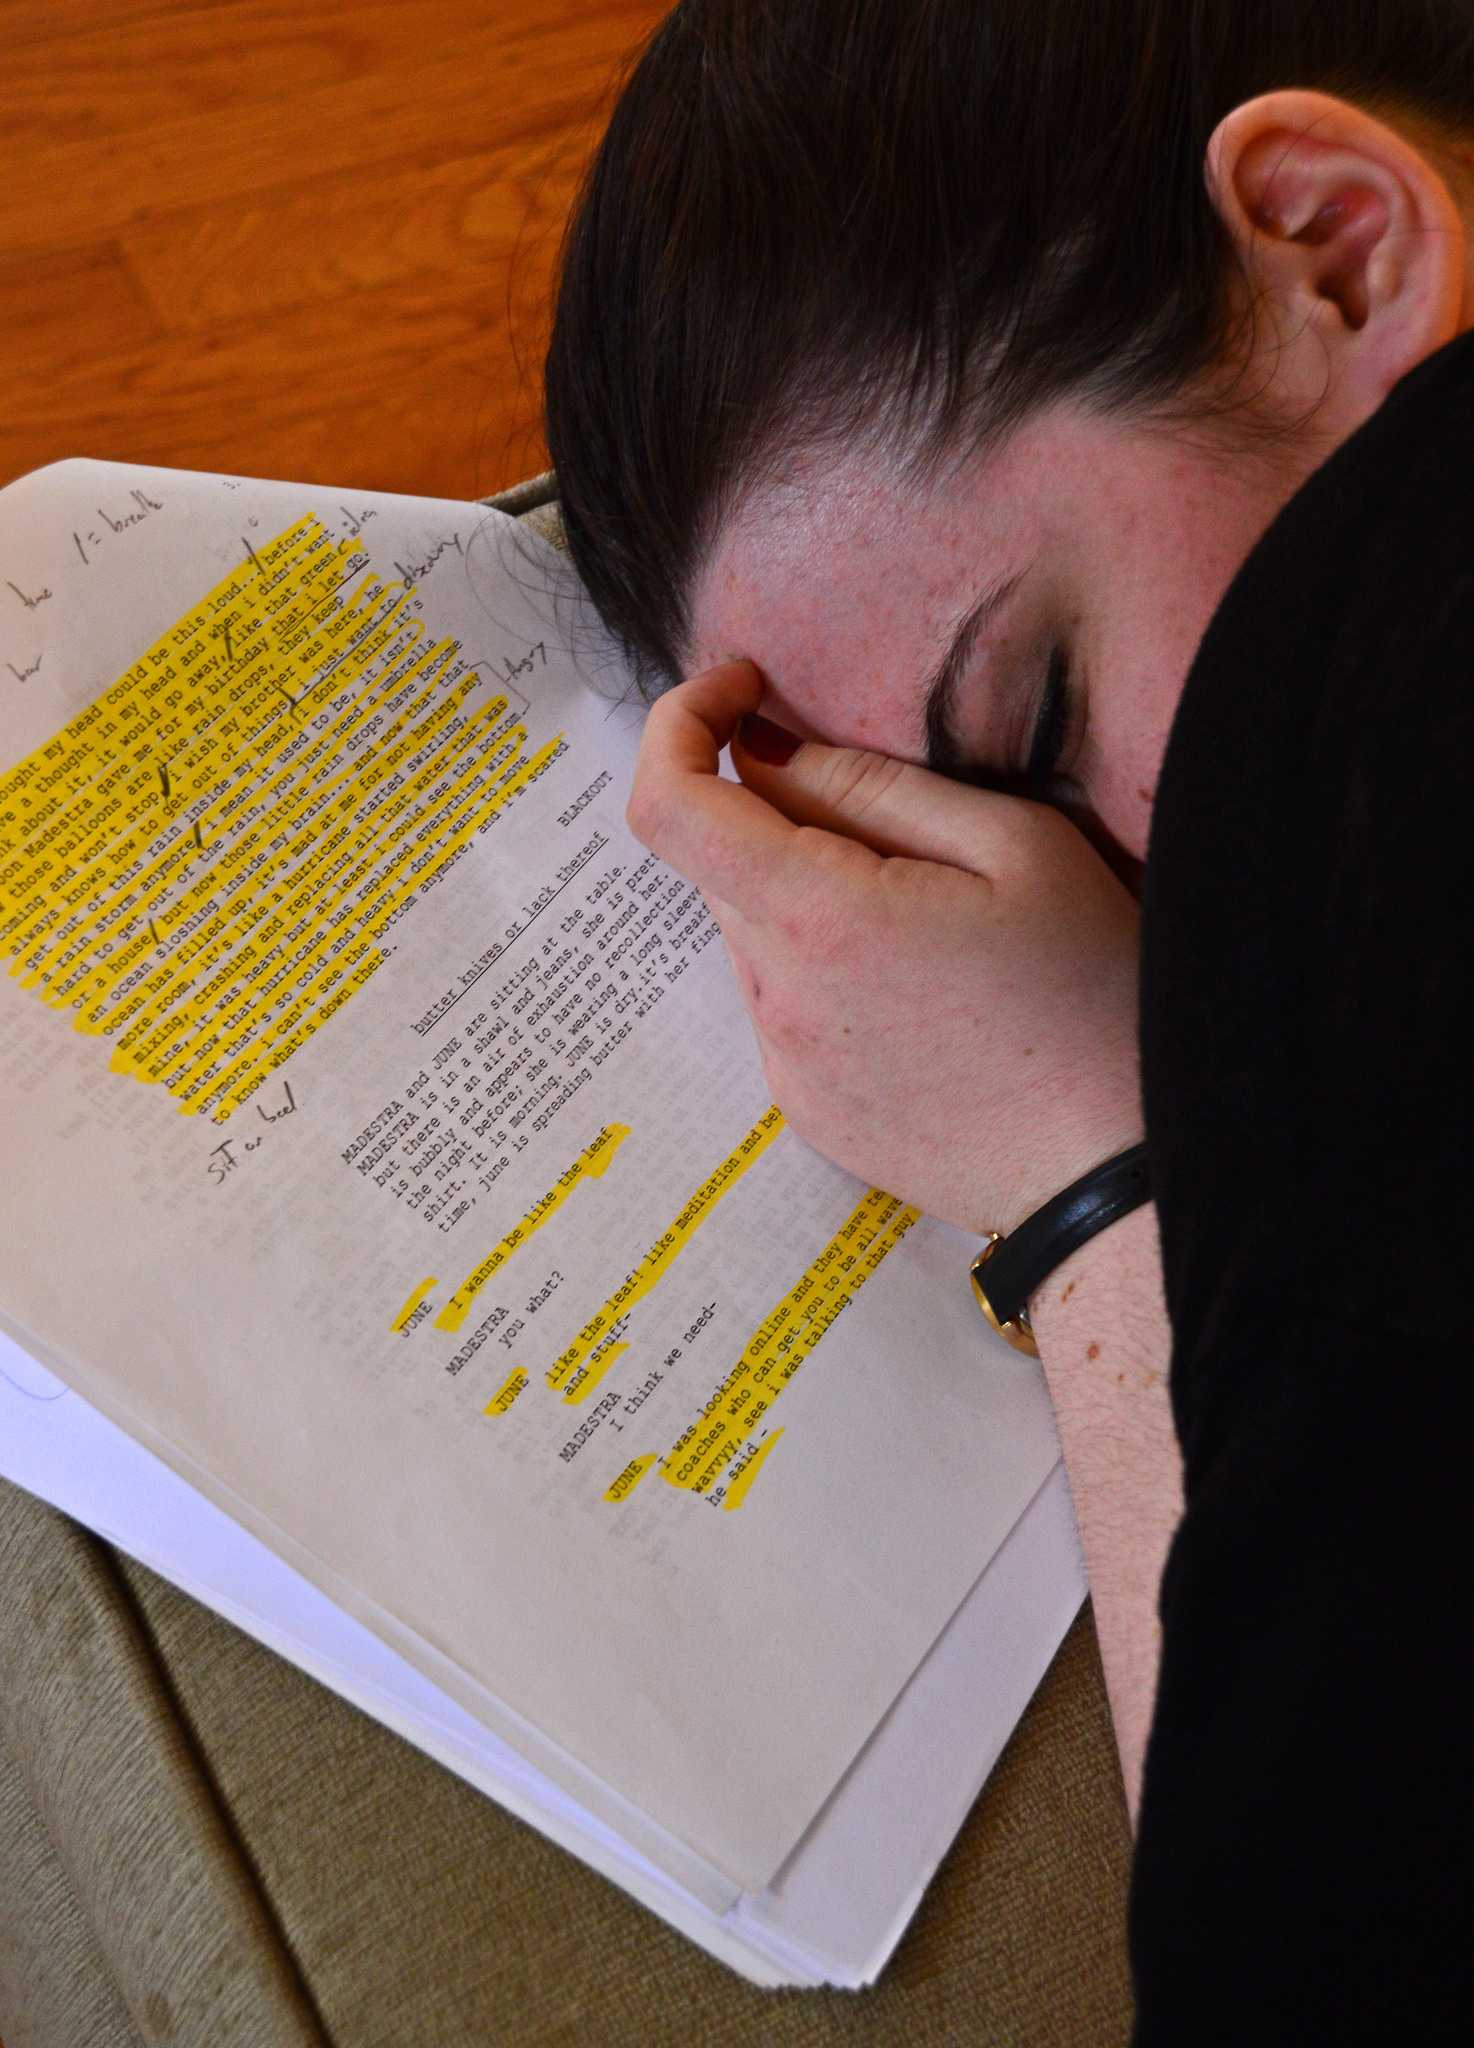 """Theater major Jennifer Marte sleeps for her scene as a few of the cast members they rehearse Sunday, April 19. The upcoming play called """"Puddles"""" will be performed at the Greenhouse Festival Saturday, April 25. (Katie Lewellyn / Xpress)"""